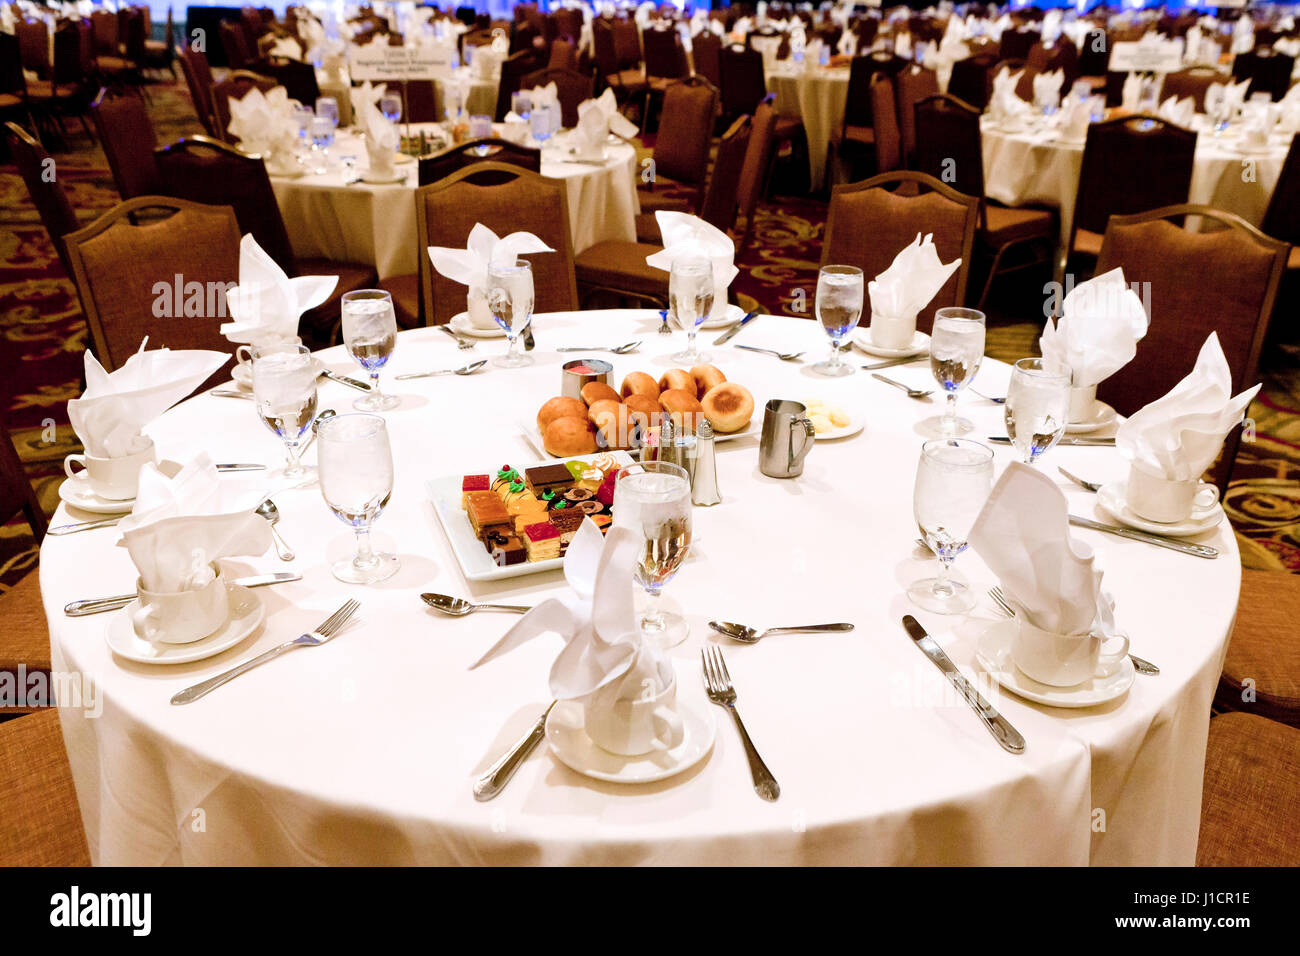 Hotel banquet dining table for large event  - USA - Stock Image